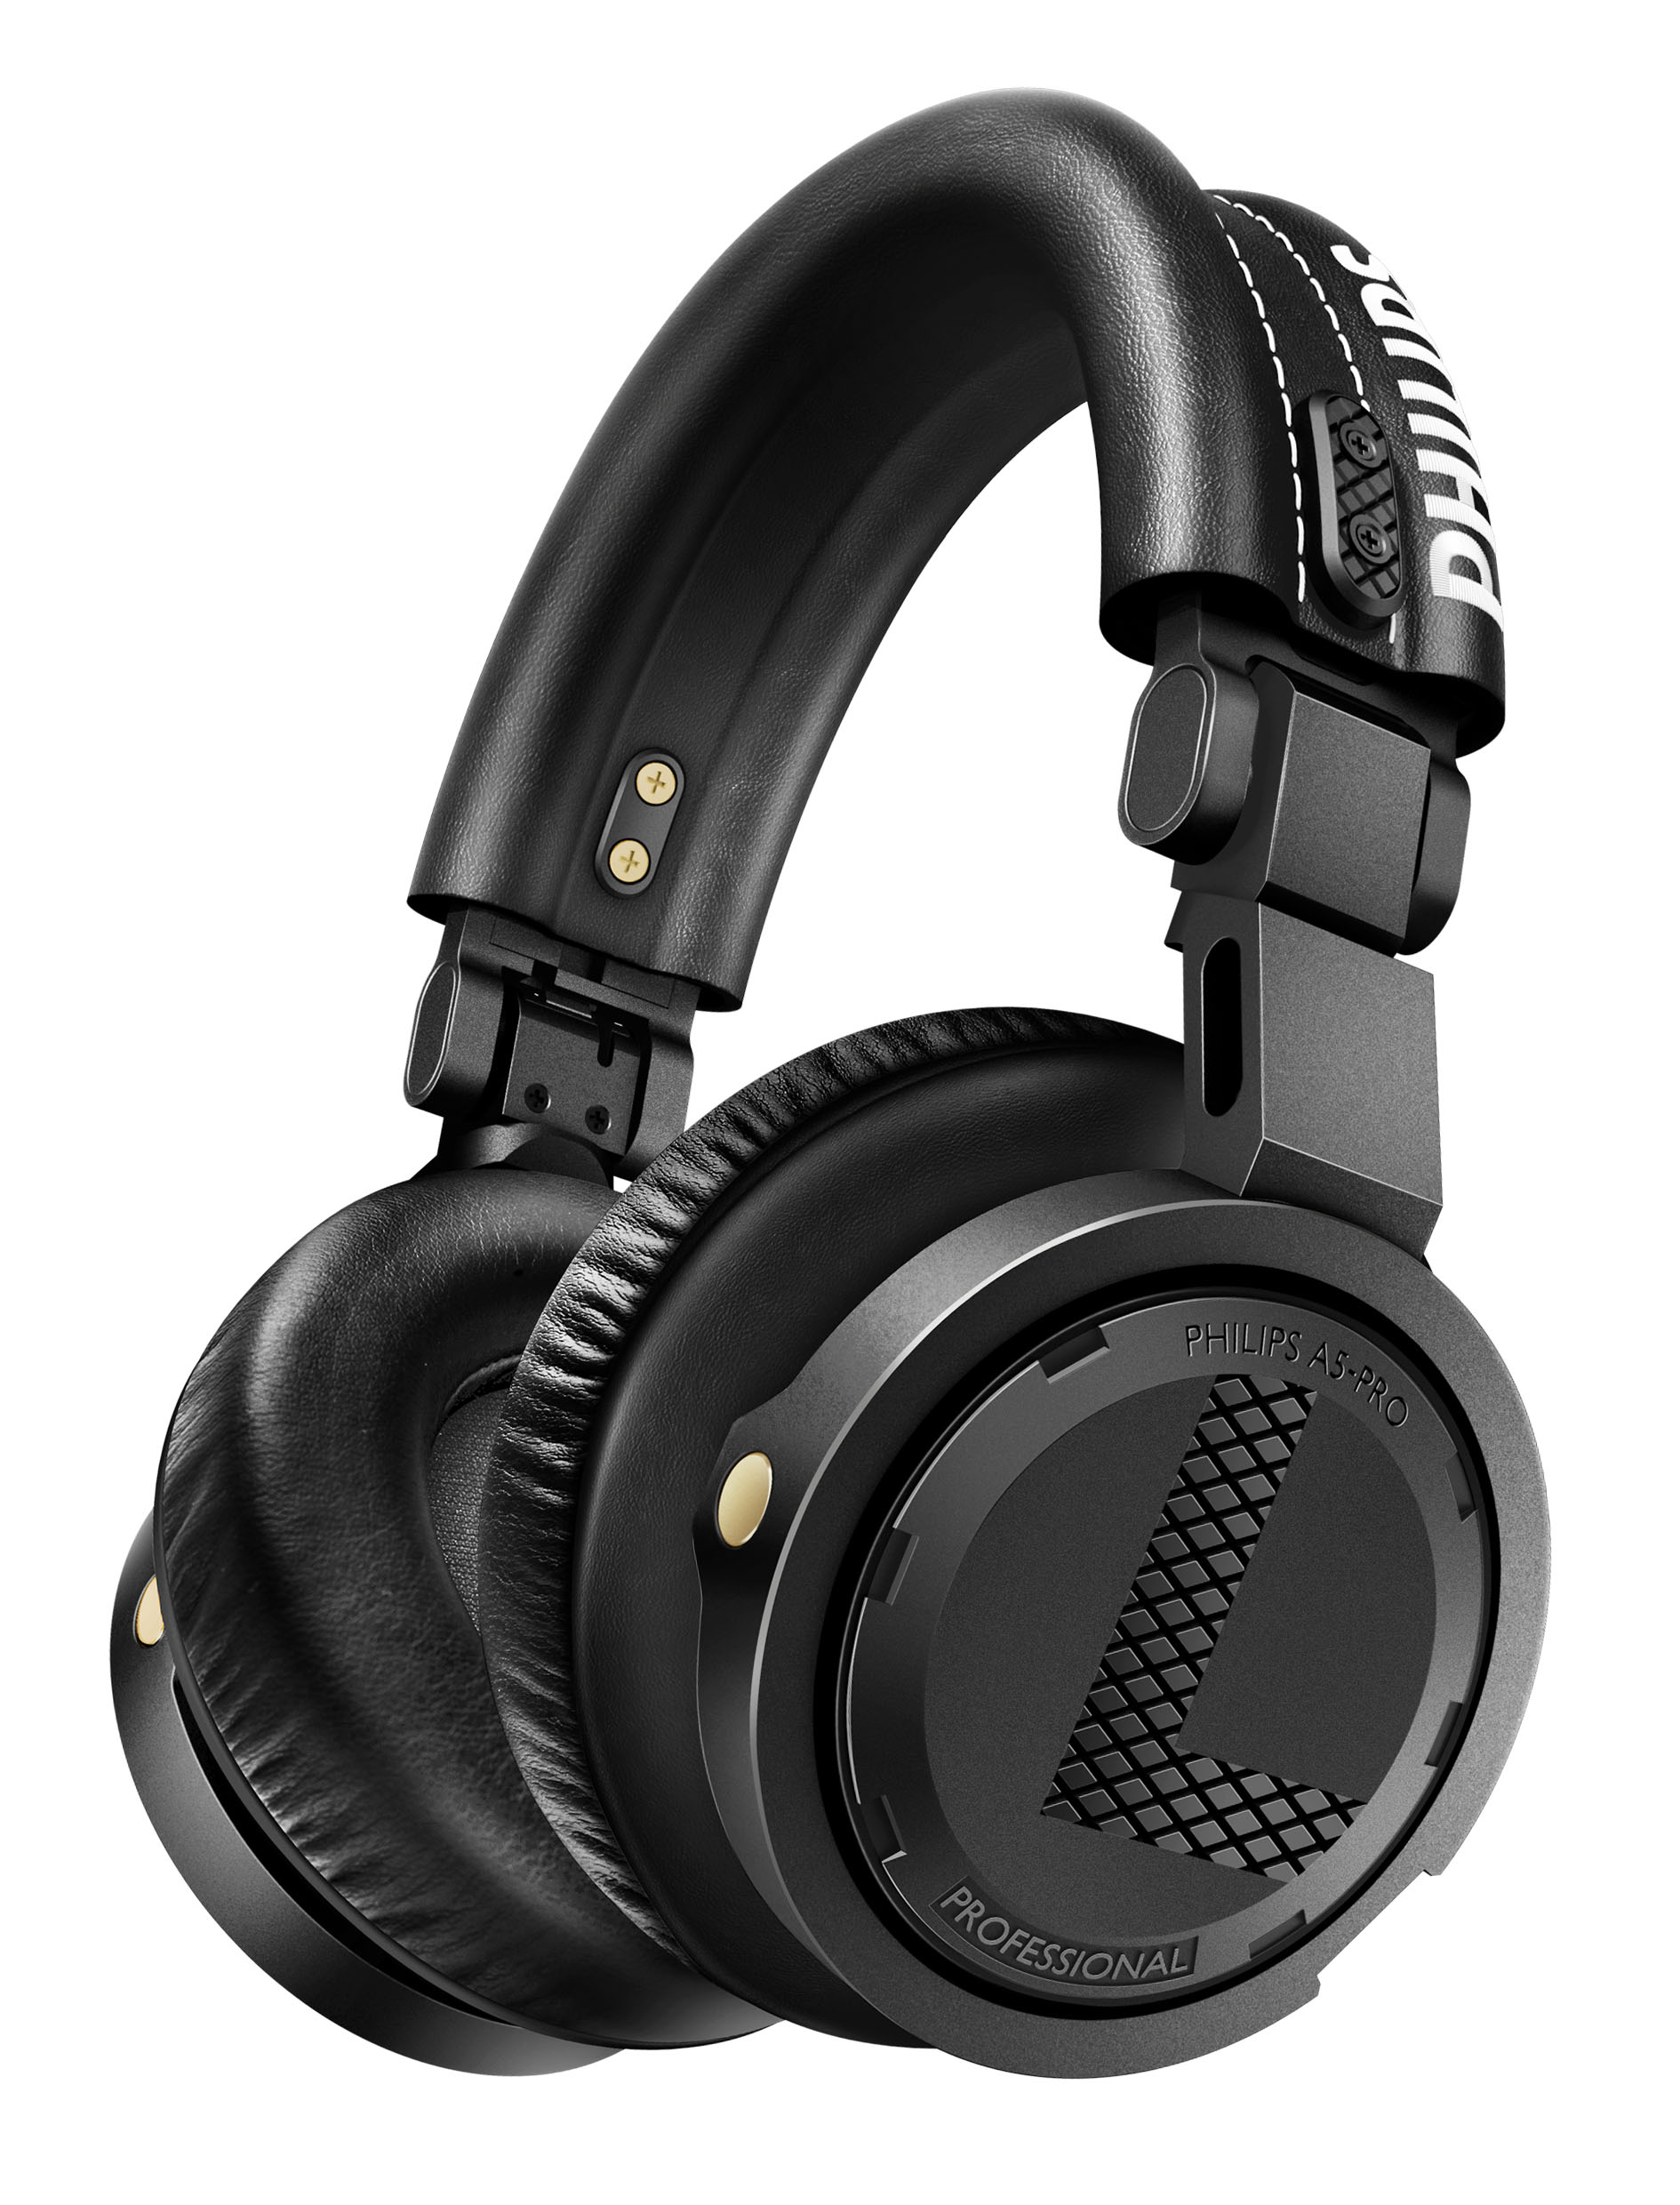 Philips worked closely with Armin Van Buuren to create the A5 Pro, headphones targeted at professional DJs who demand a high standard of music reproduction in their work.